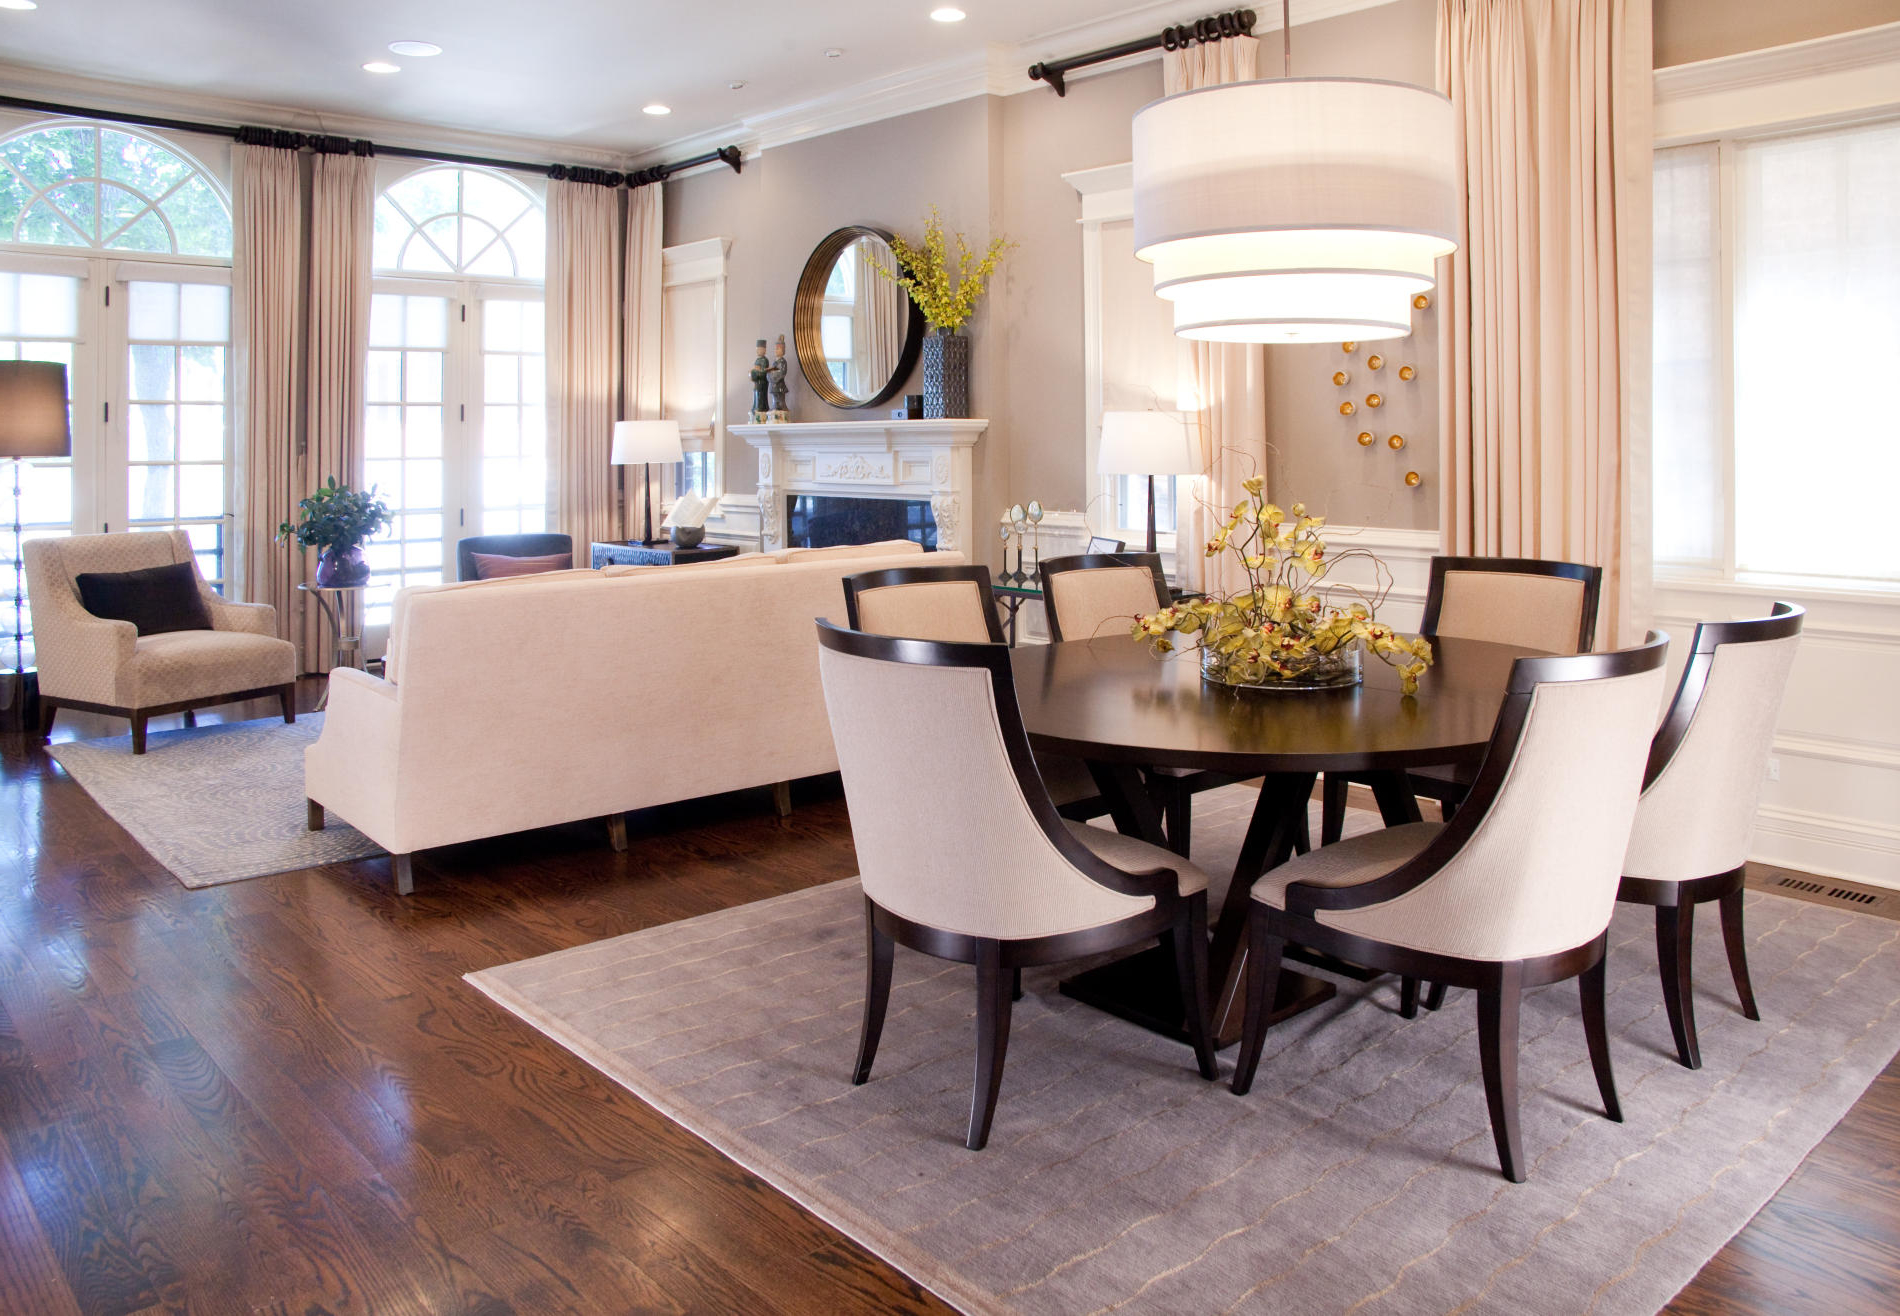 Italian Formal Dining Room For Apartment With Round Table (Image 23 of 30)